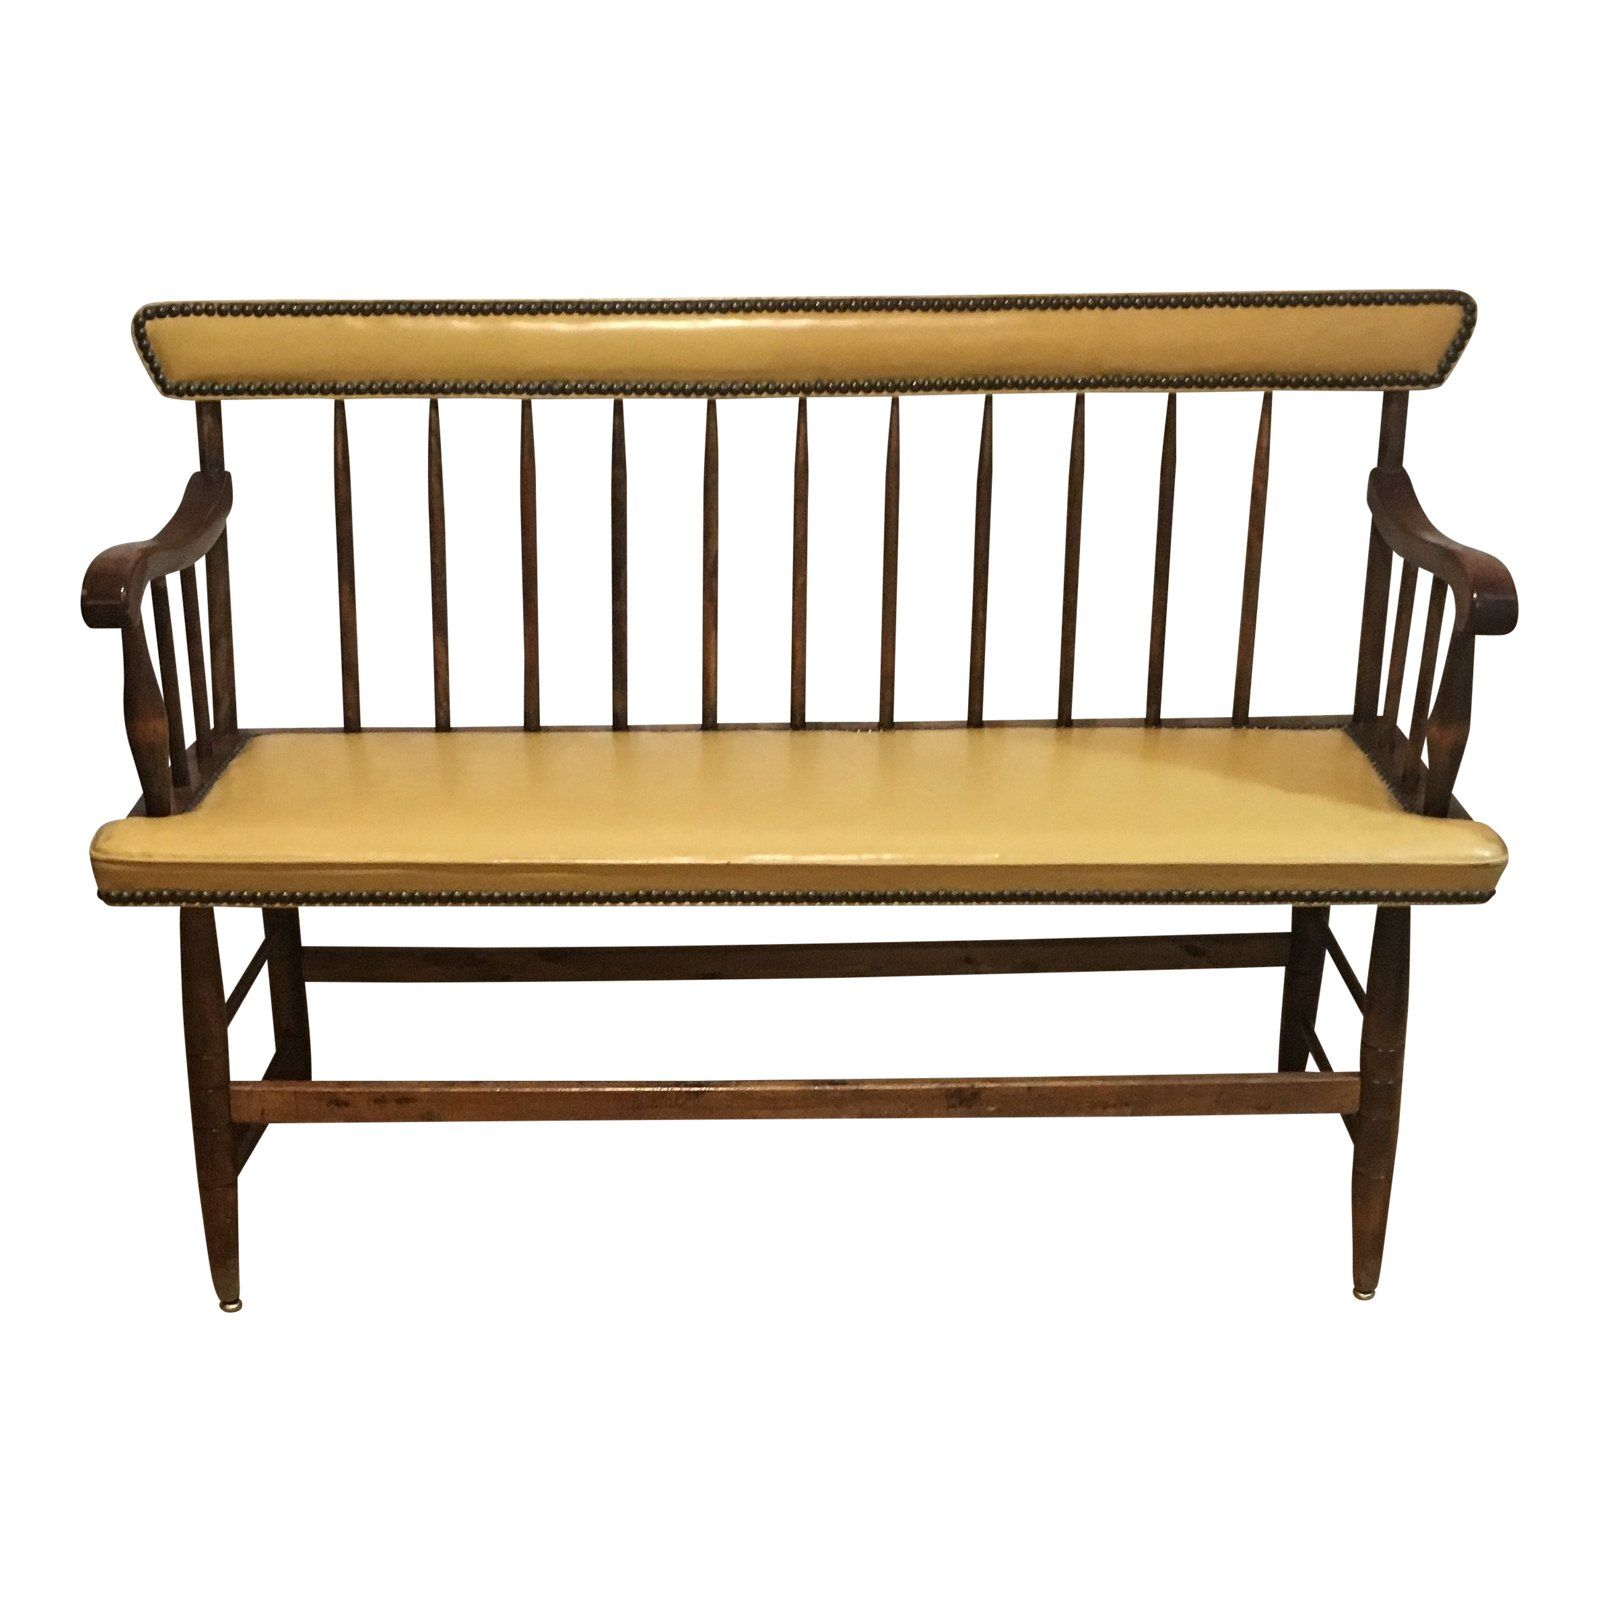 1950s Vintage Studded Yellow Cushion And Back Bench For Sale Benches For Sale Yellow Cushions Vintage Bench